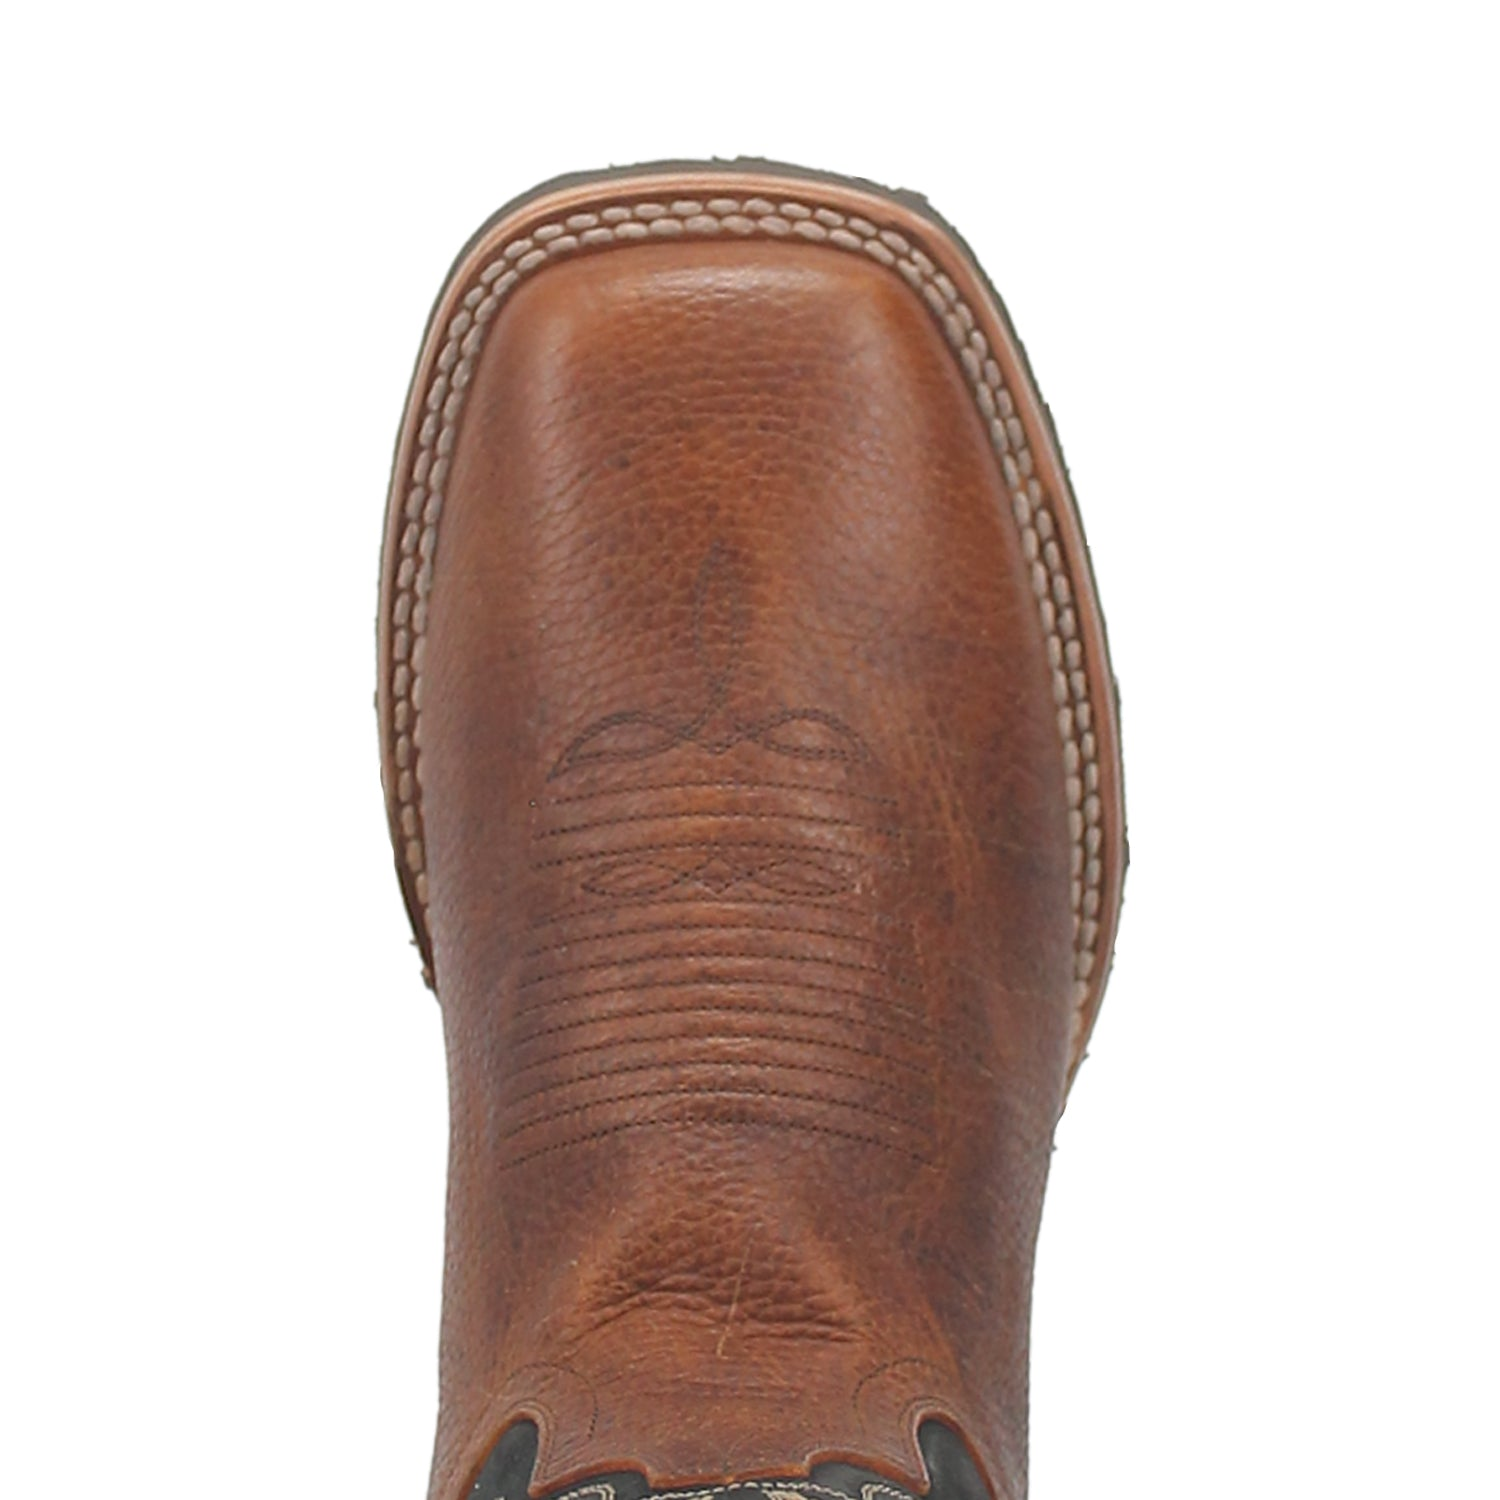 BOLDON LEATHER BOOT 16139789434922